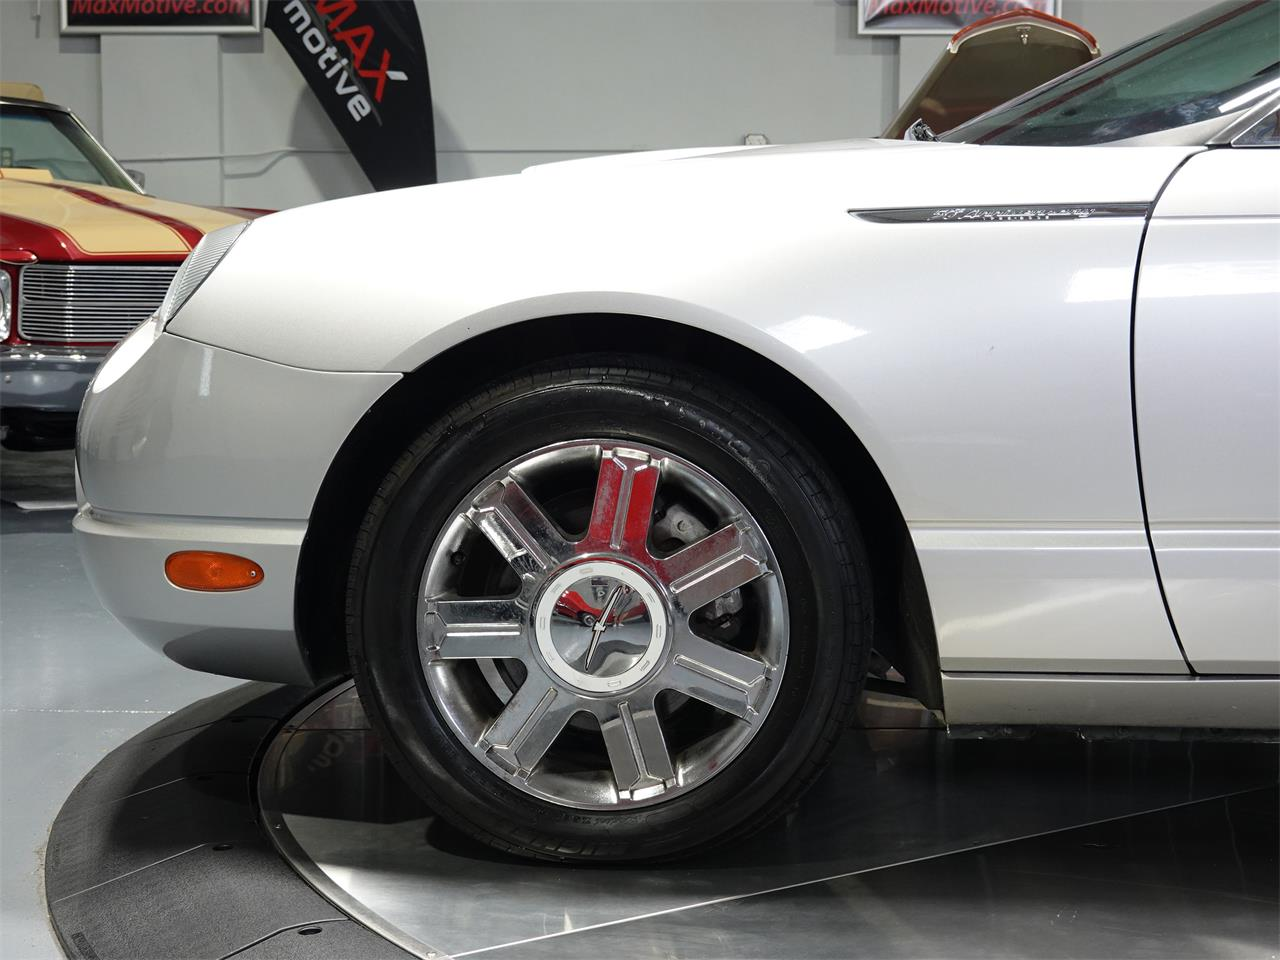 2005 Ford Thunderbird (CC-1382975) for sale in Pittsburgh, Pennsylvania